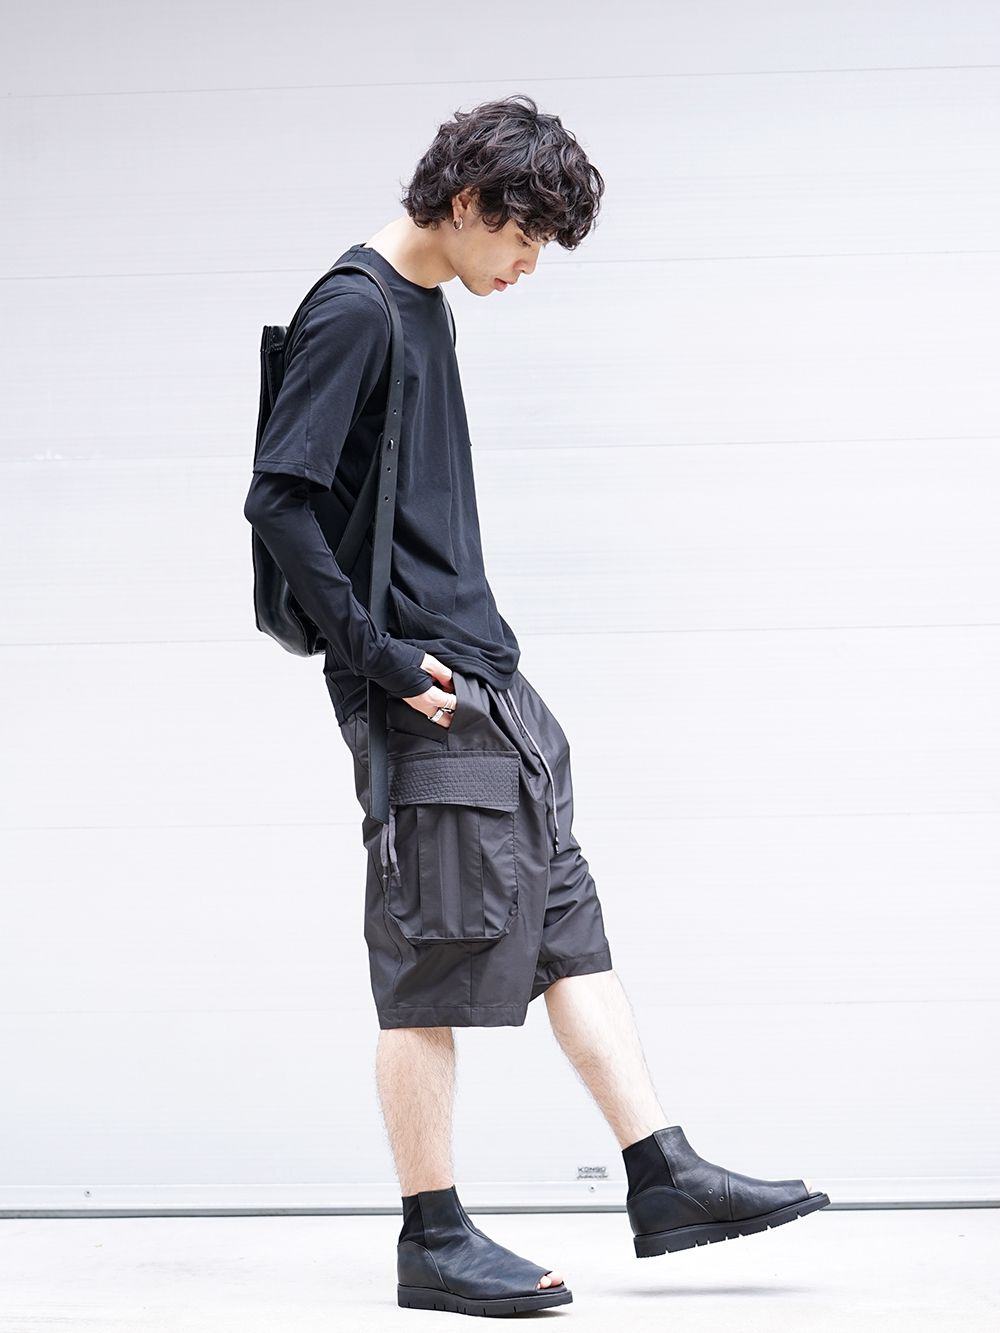 DEVOA 19SS Cutsew & Short Pants Recommended Style - 4-001